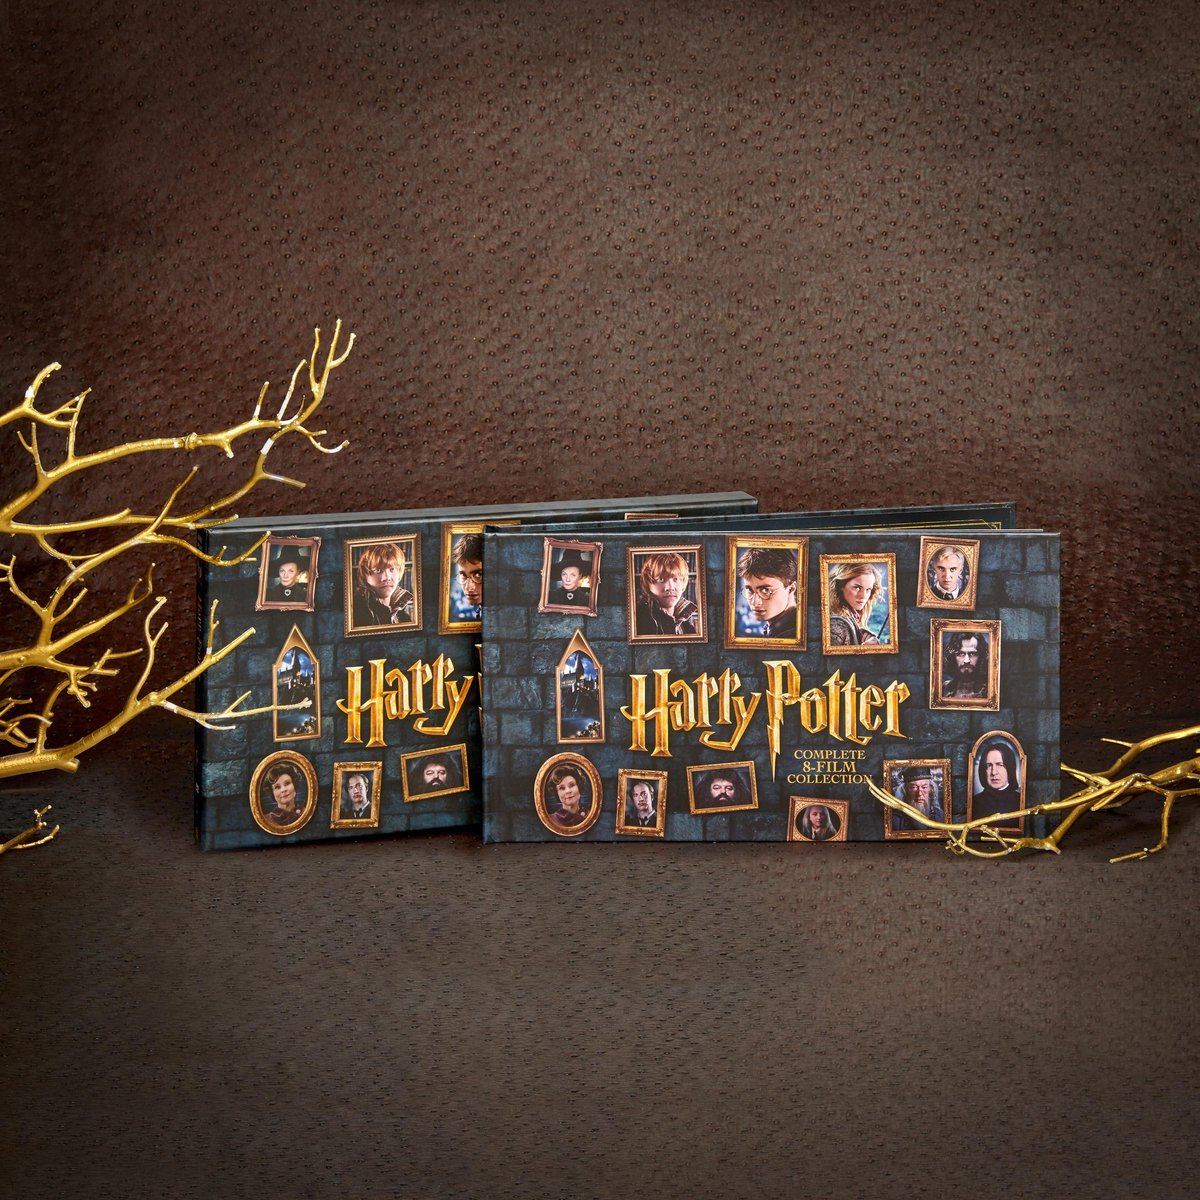 Harry Potter - Complete 8-Film Collection (Blu-ray) (Special Edition)